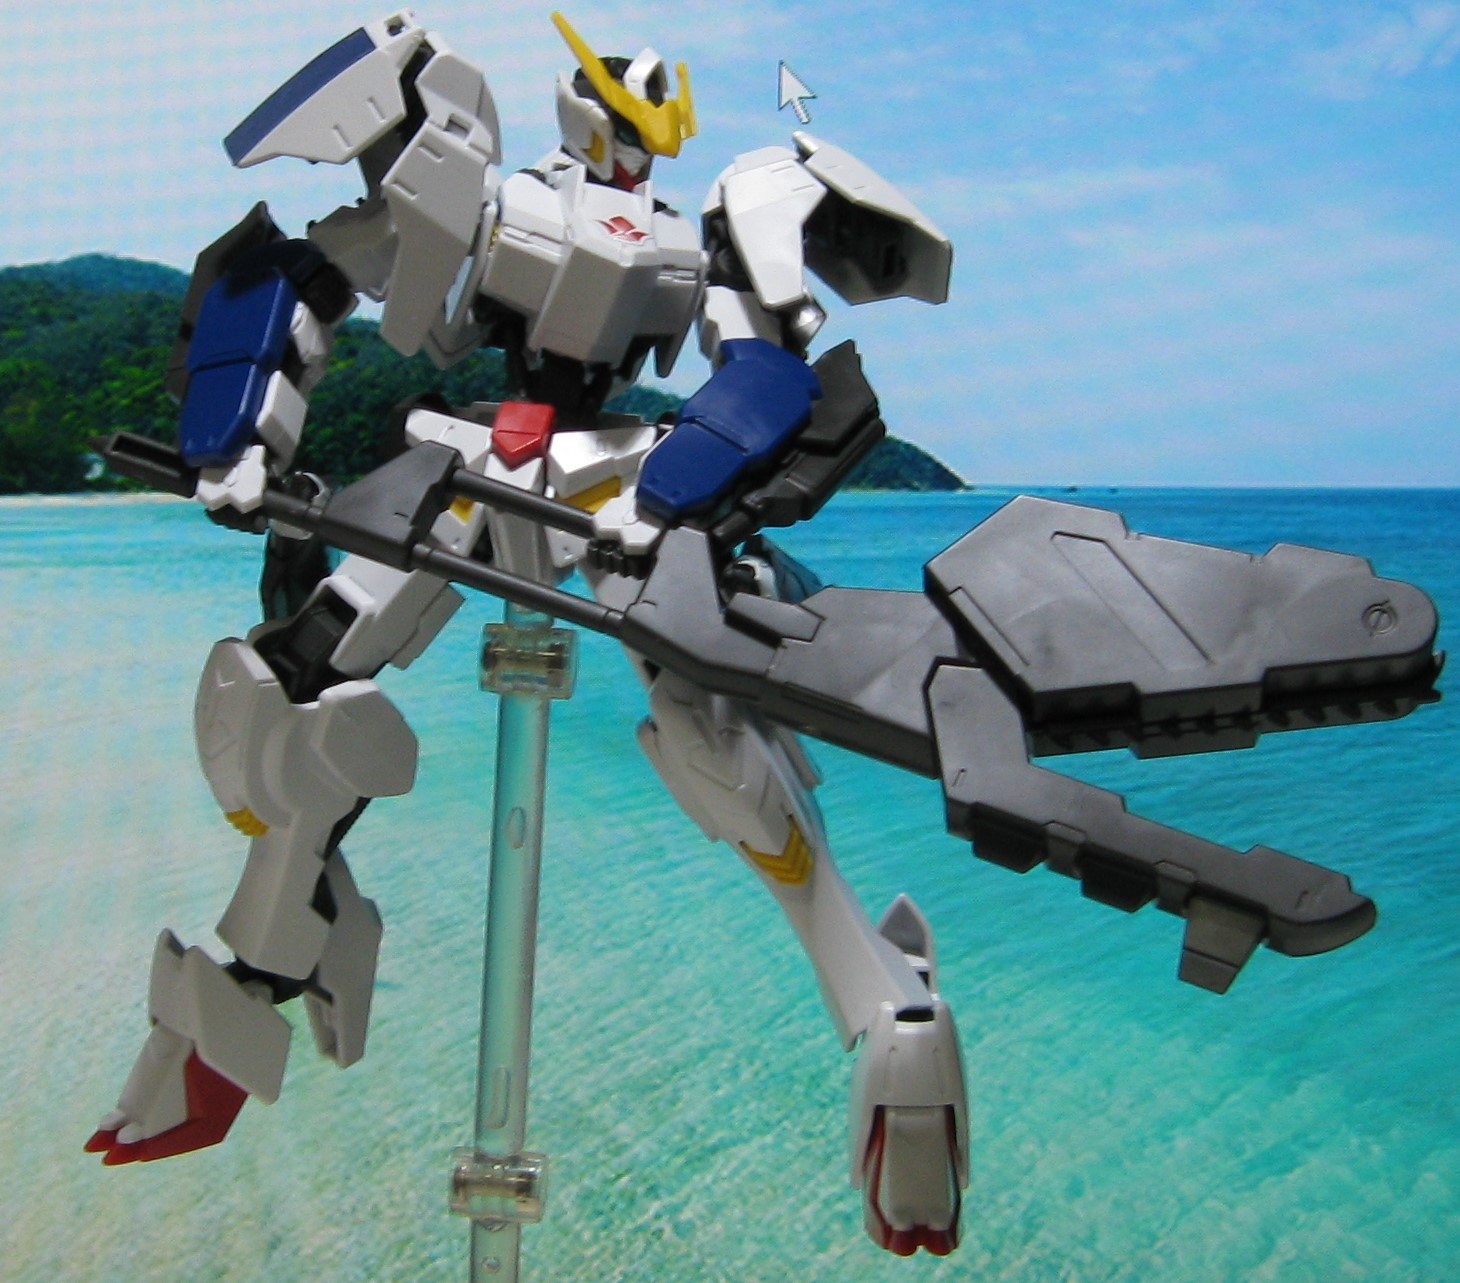 HGバルバトス デジラマ 全塗装 第6形態 ガンプラHG Barbados diorama Dejirama all painting sixth form Gundam